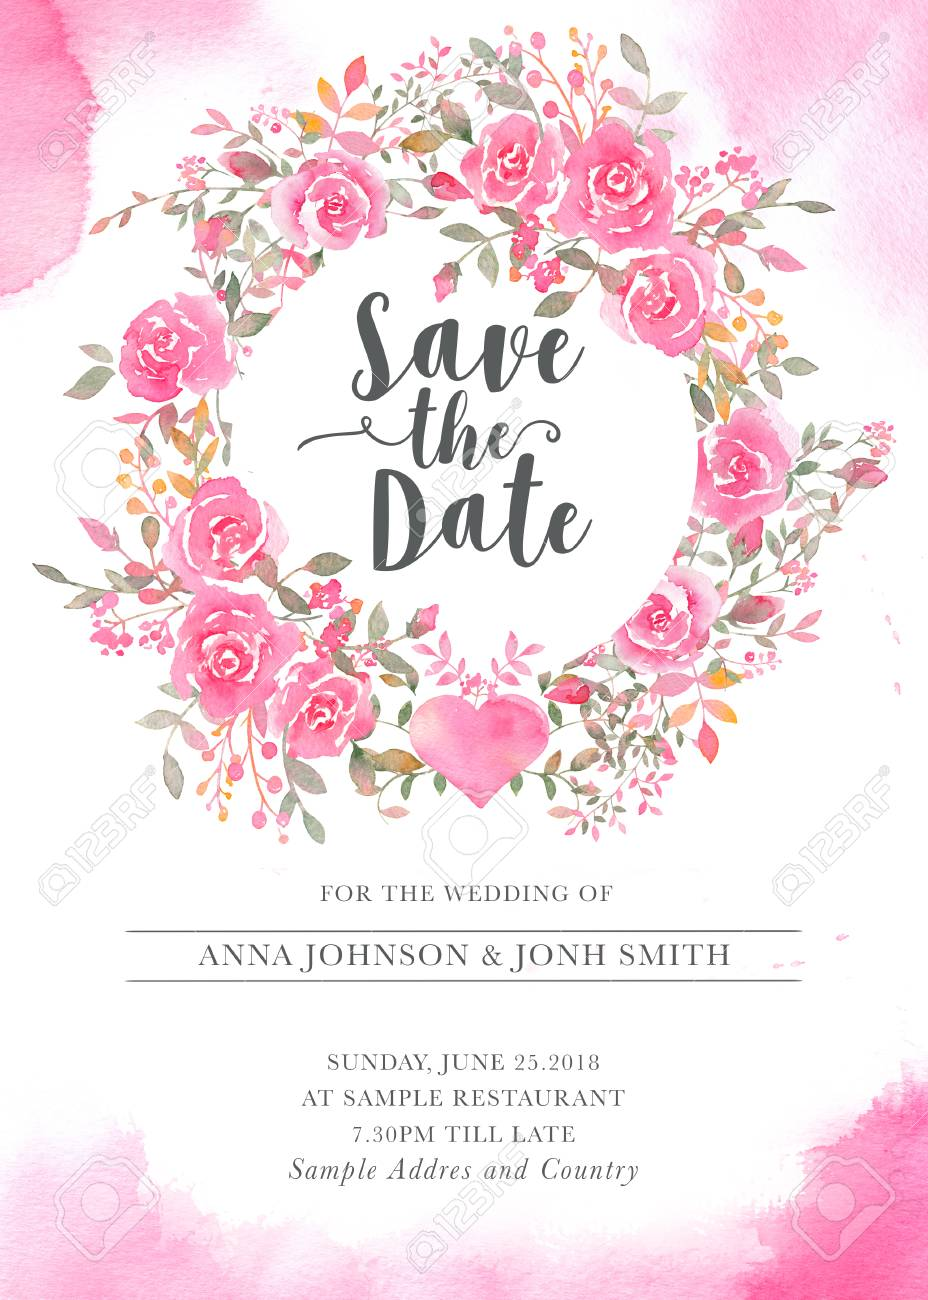 Wedding Invitation Card Template With Watercolor Rose Flowers